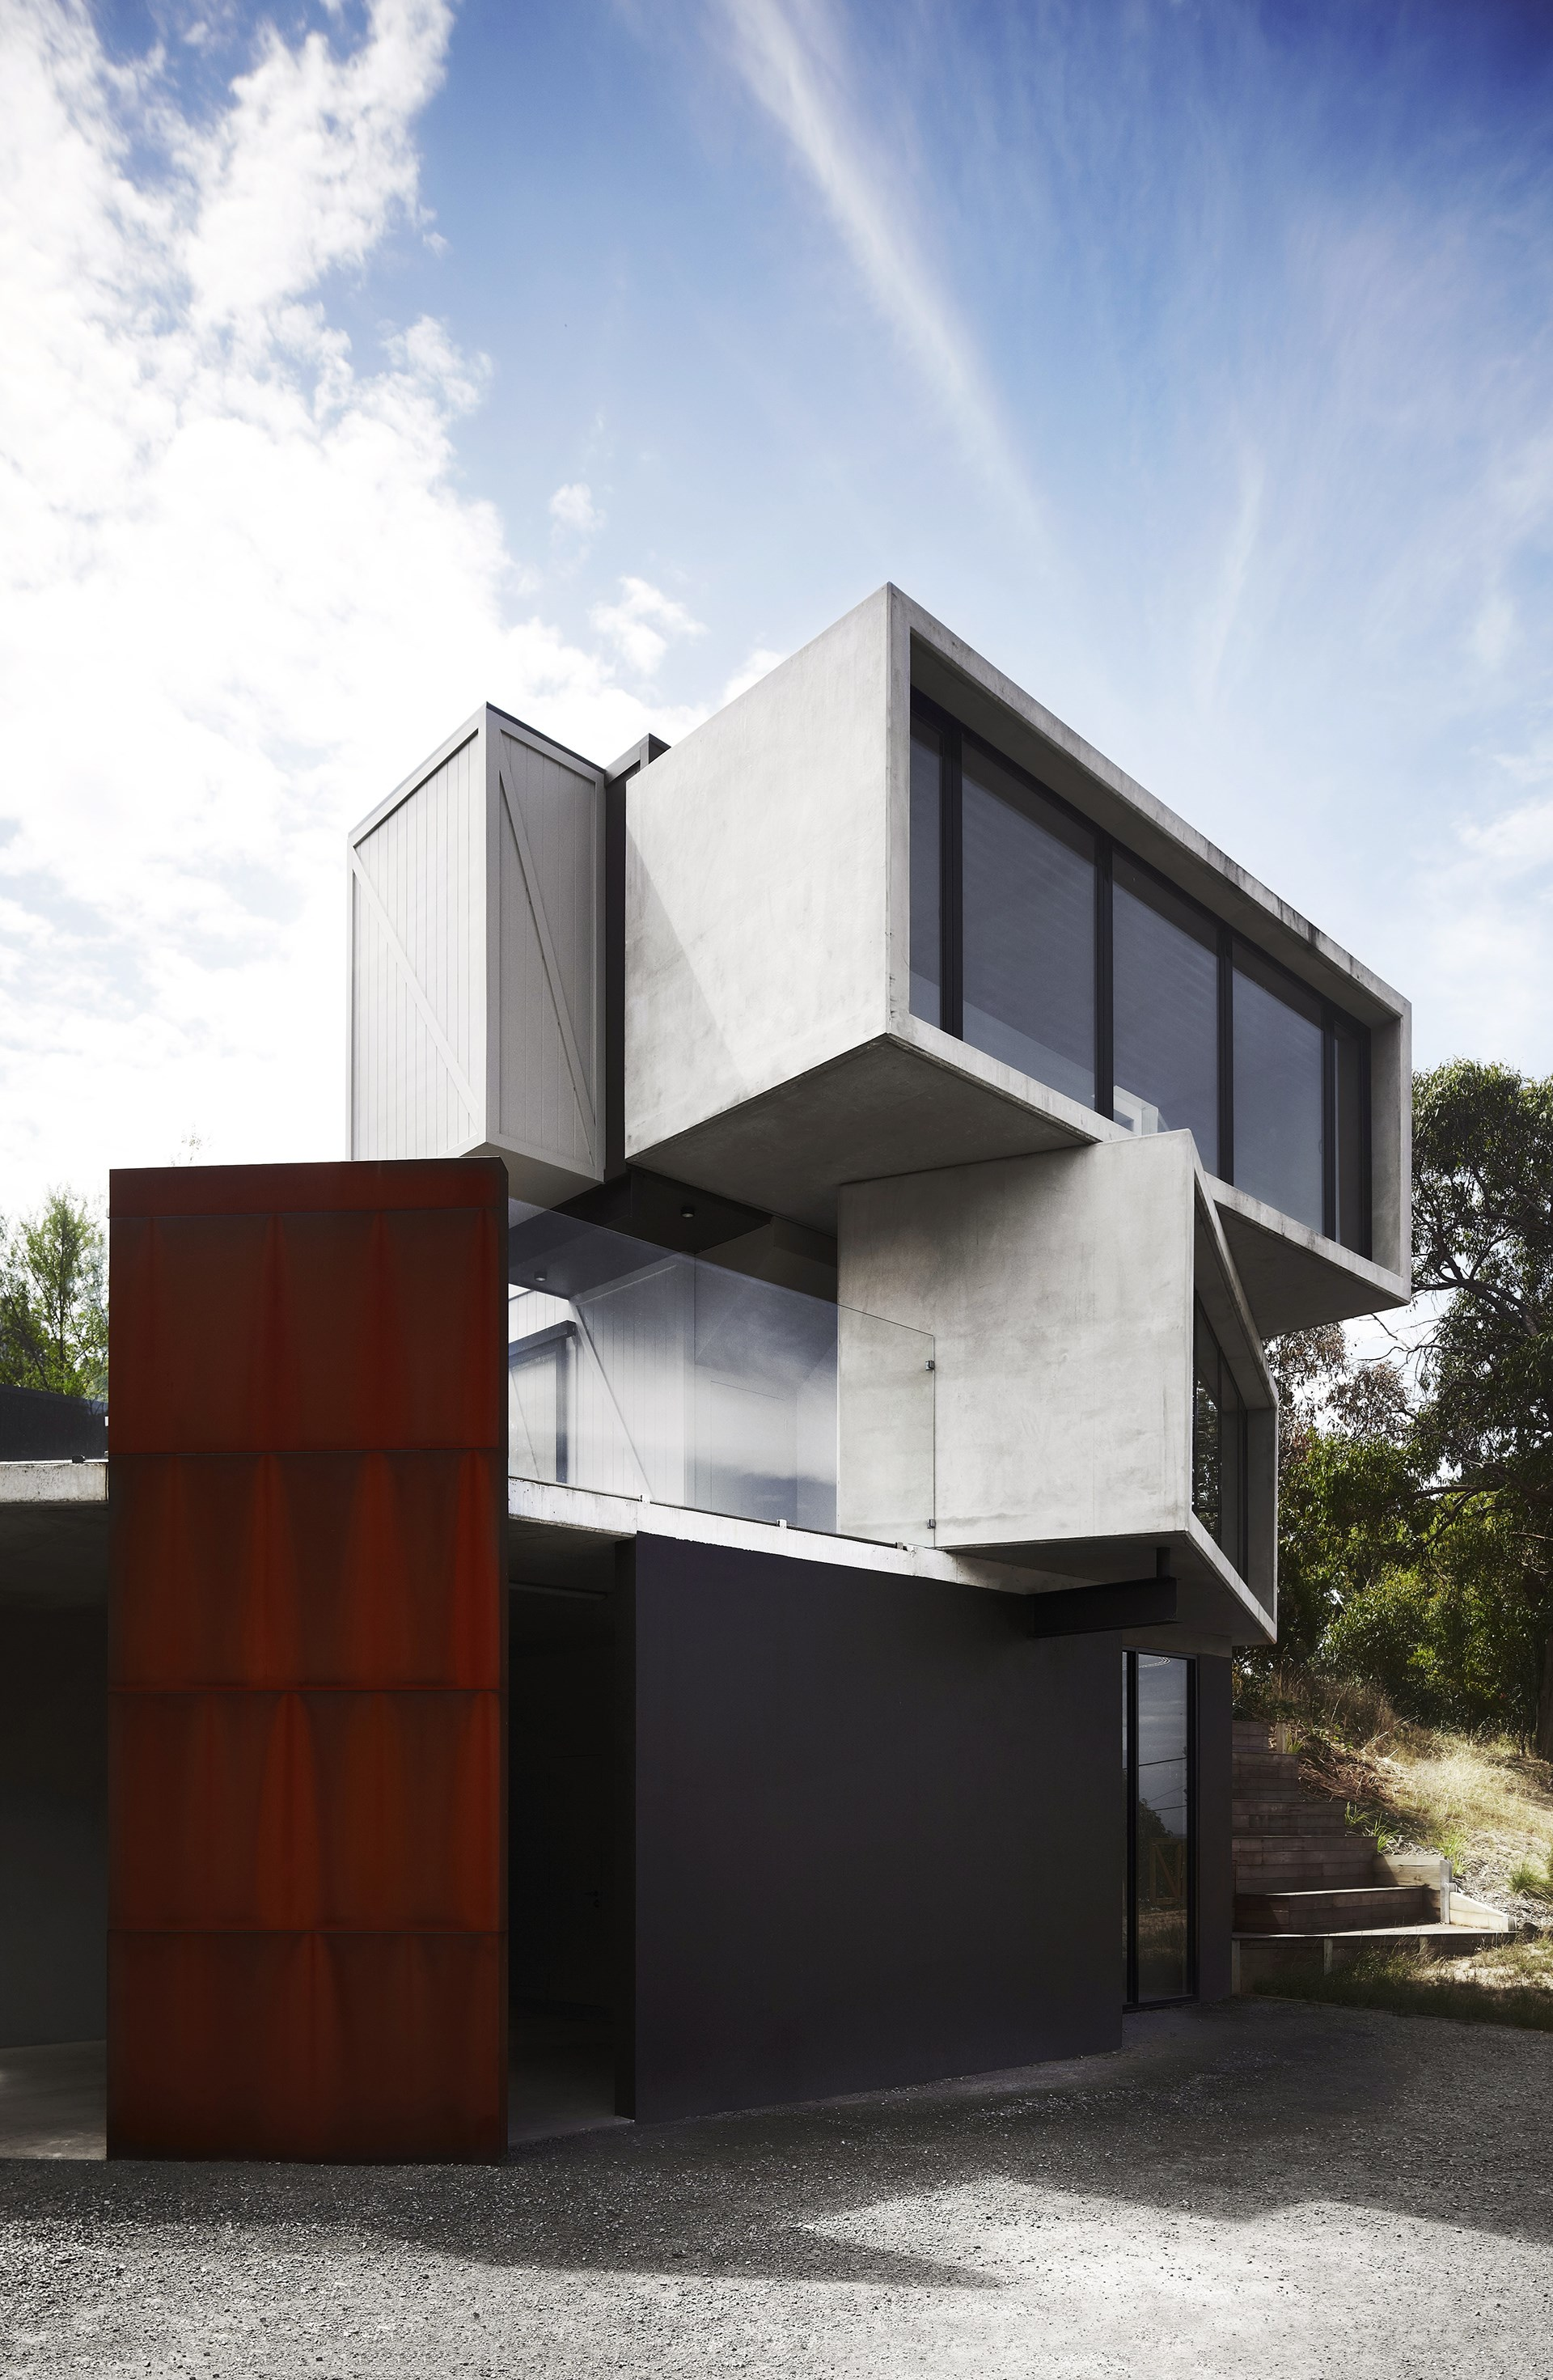 To create the appearance of randomly stacked containers, two 20-tonne concrete boxes were trucked along the Great Ocean Road and then craned into position. Find out more about this [concrete and steel pod house in Lorne](http://www.homestolove.com.au/concrete-and-steel-pod-house-in-lorne-1762). Photo: Sharyn Cairns / *Belle*